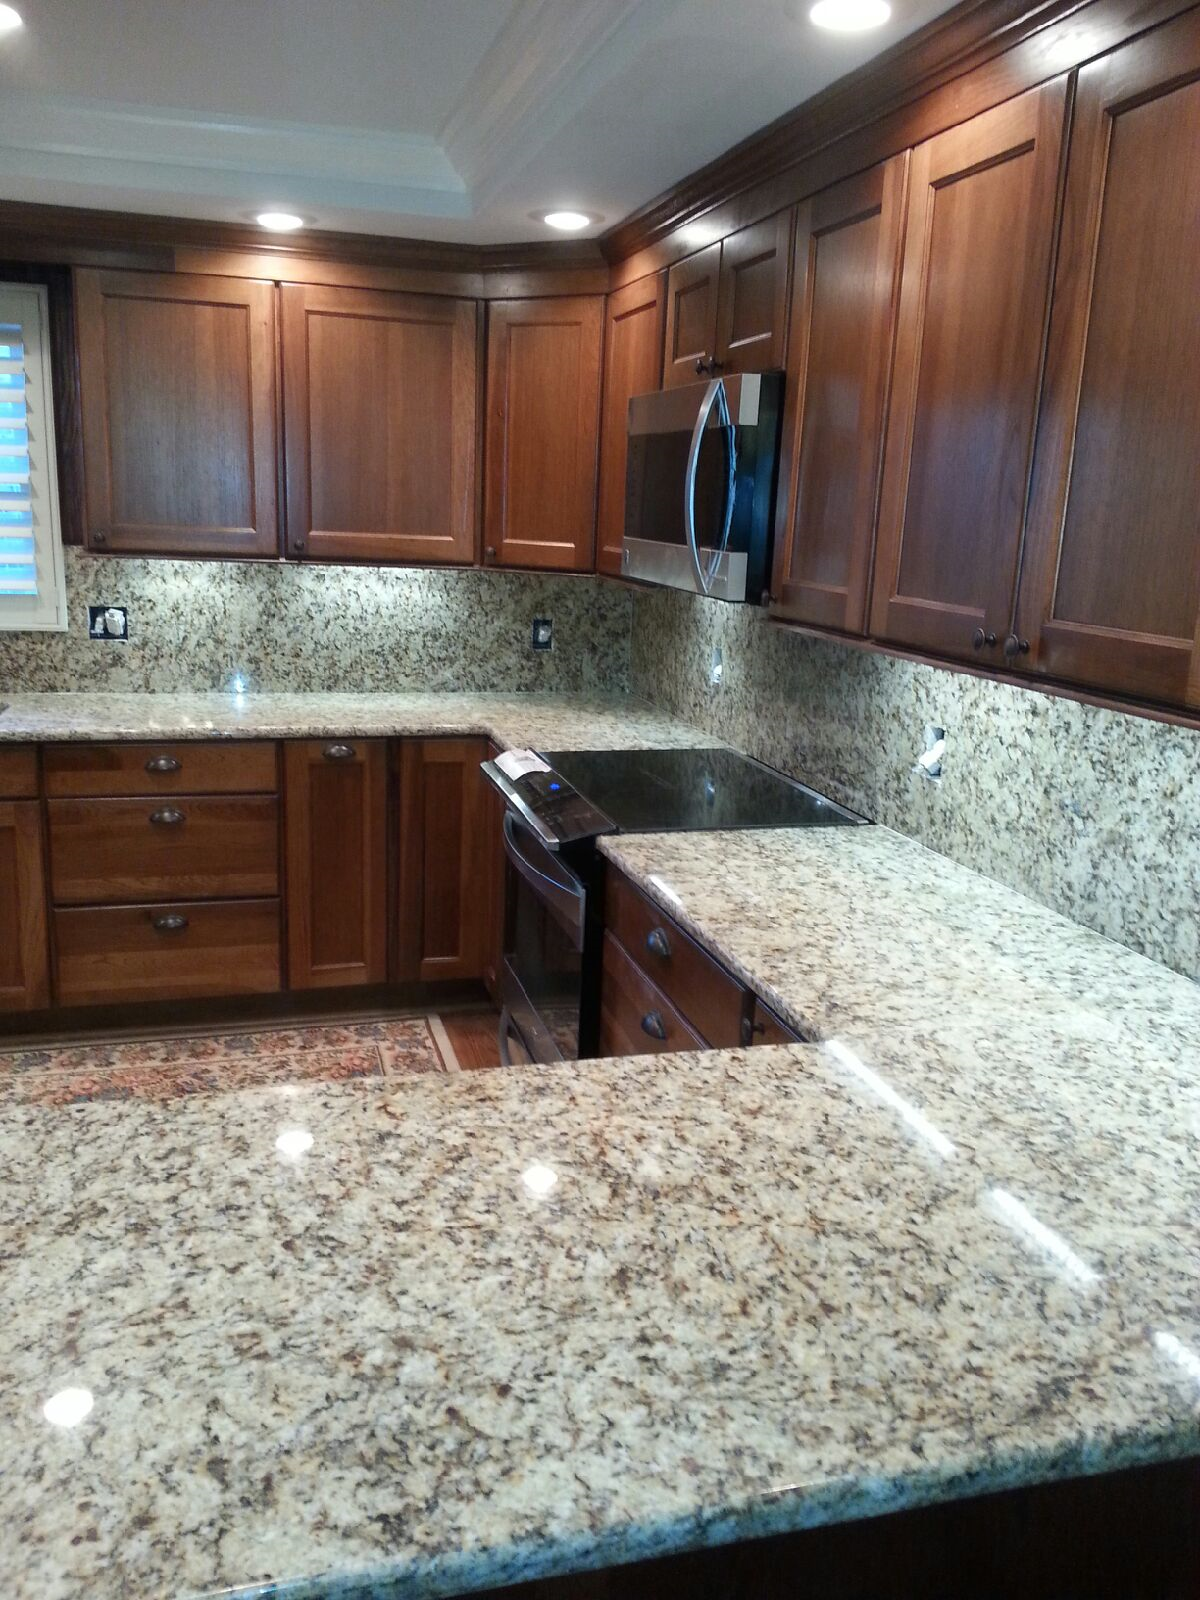 Granite counter tops can look sharp - but how do you choose the right color?